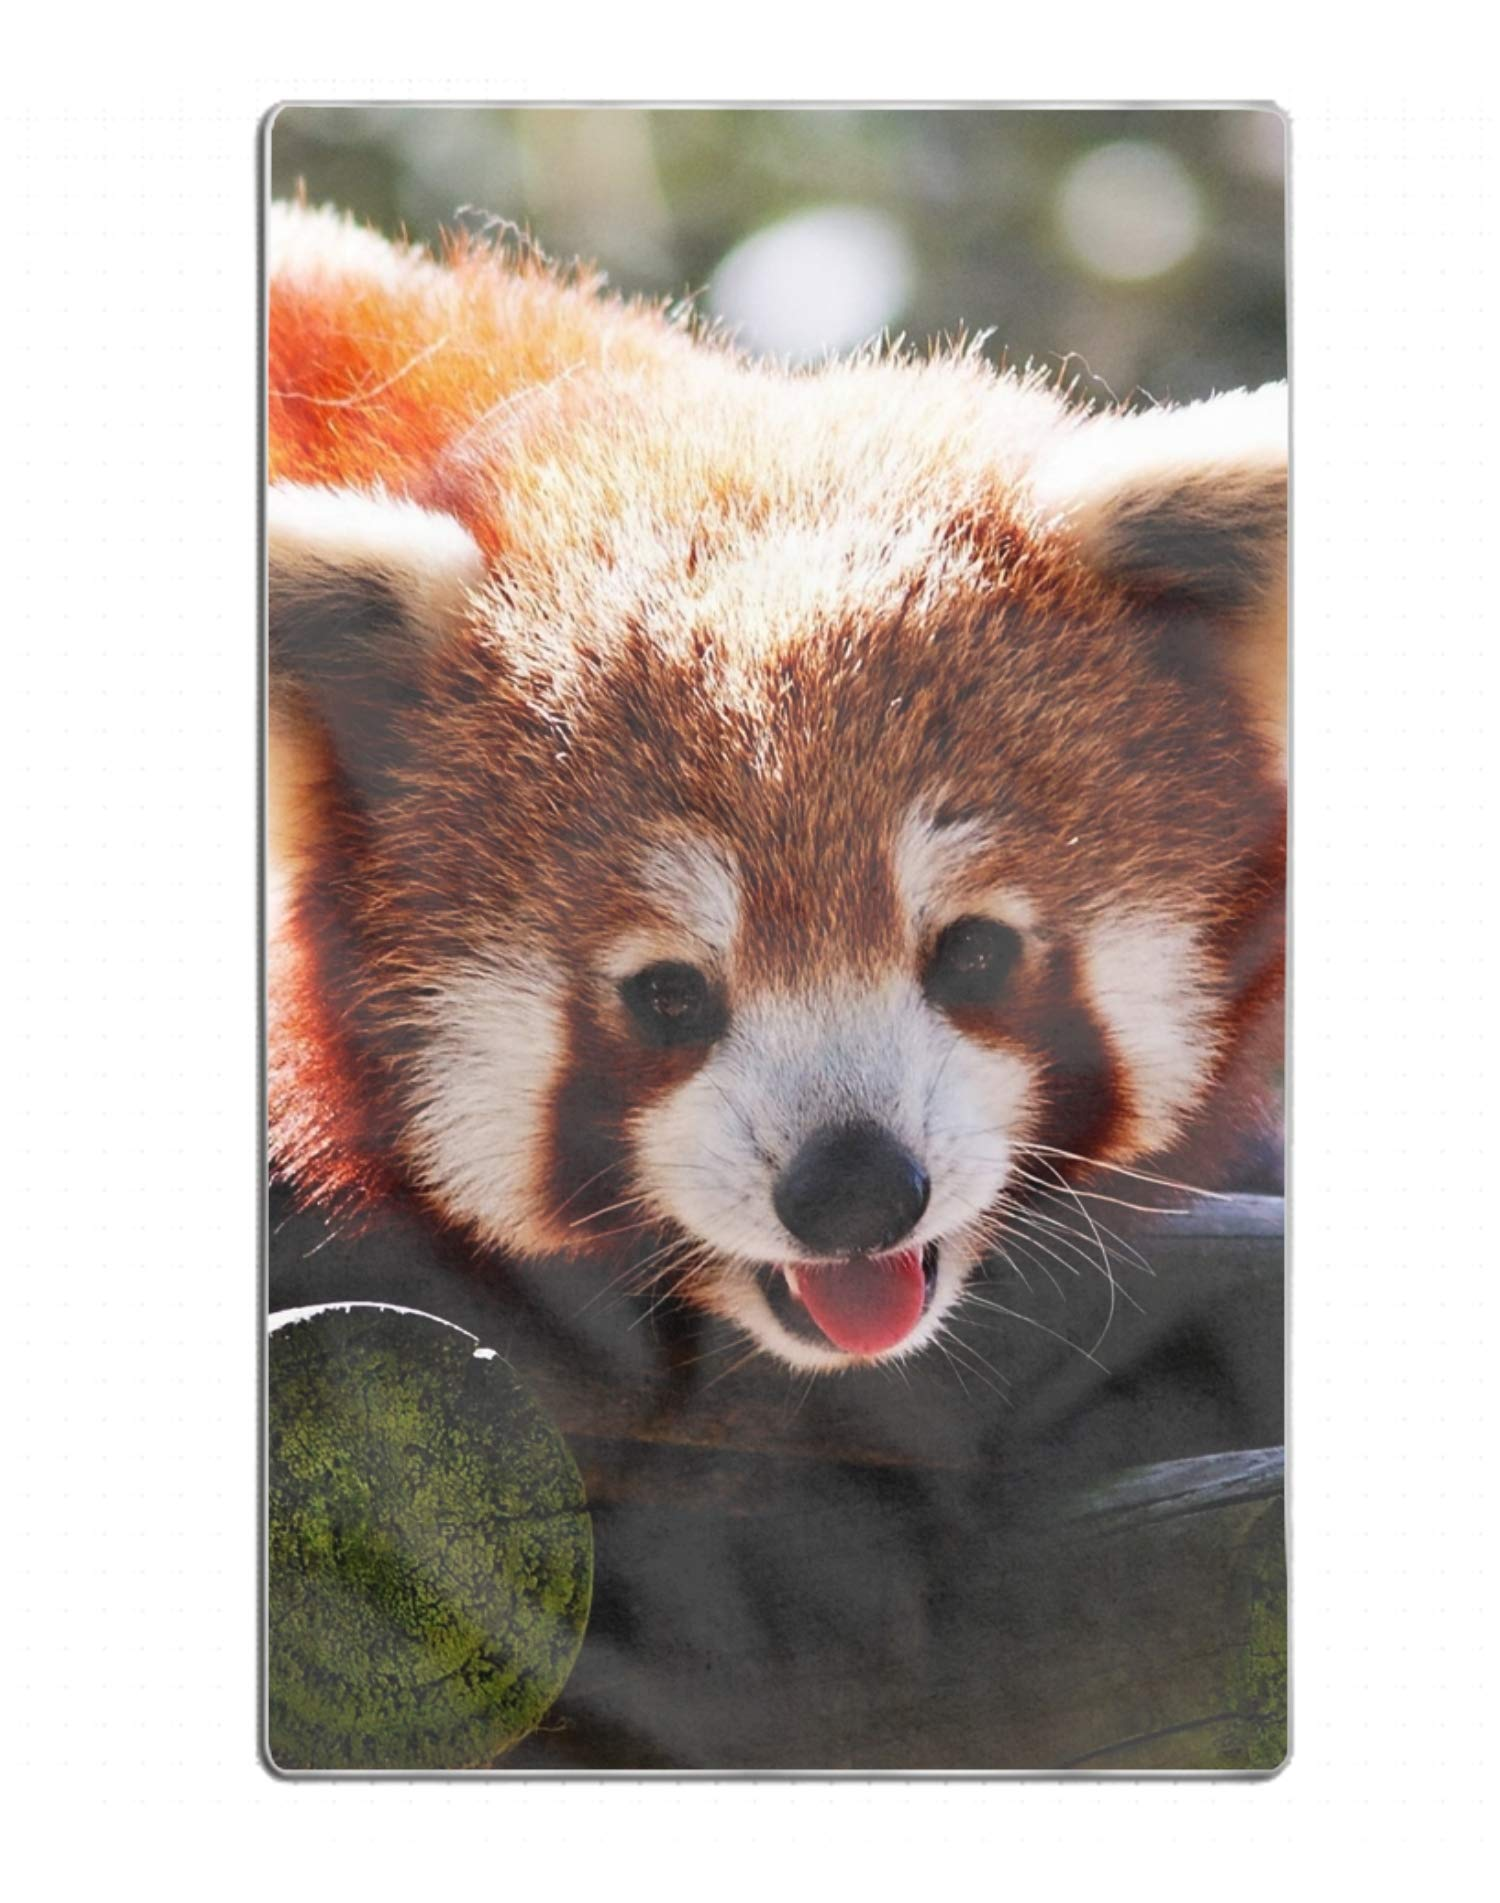 EHLMGSC Animal Red Panda Printed Shower Bath Towels Highly Absorbent for Beach, Pool and House 31.5 x 51.2 inch